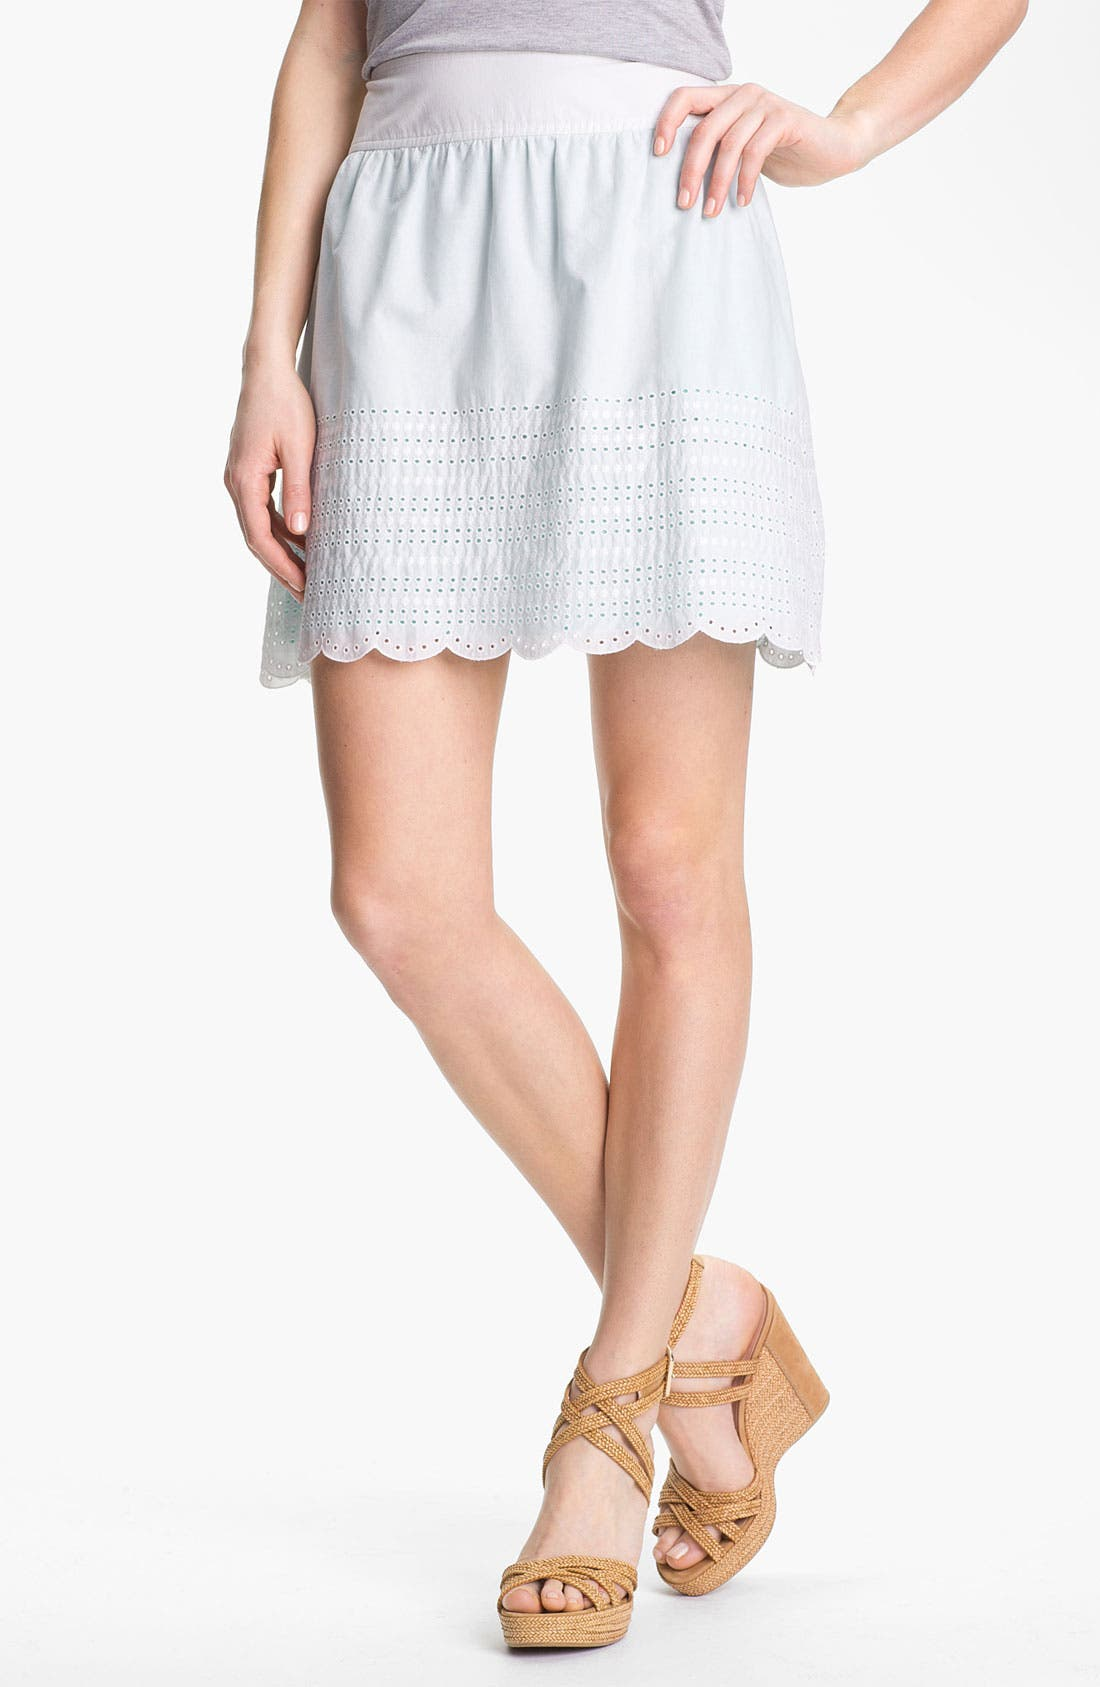 Alternate Image 1 Selected - Caslon Eyelet Cotton Skirt